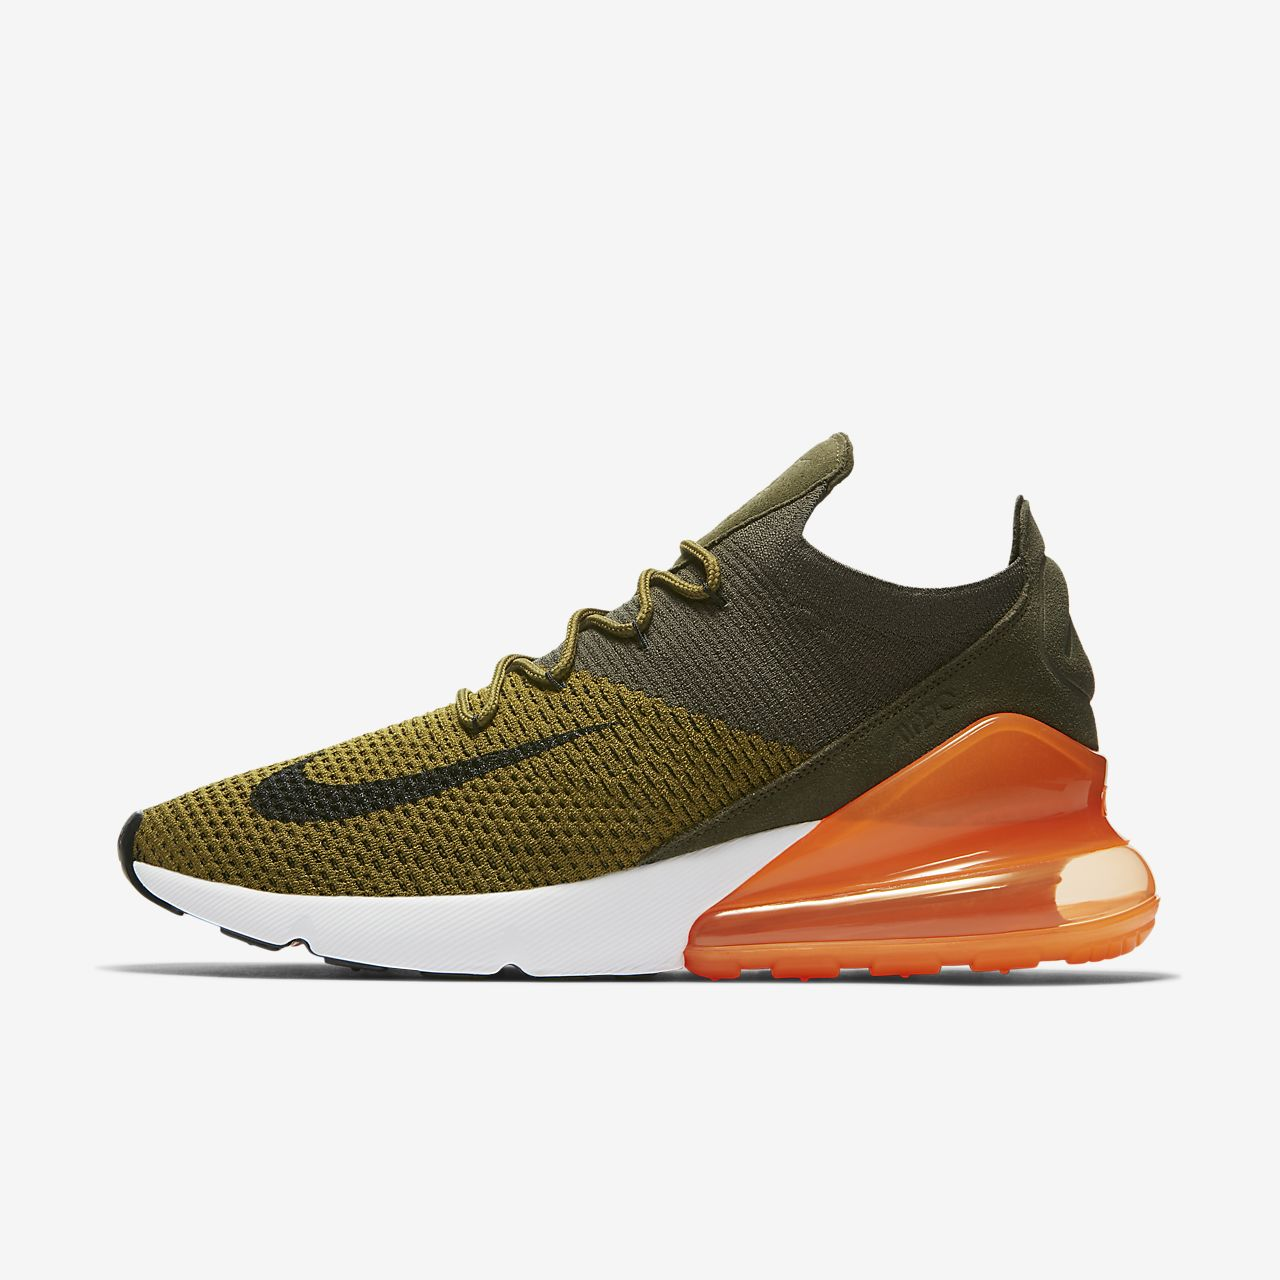 official photos 2bfb0 68685 ... shop nike air max 270 flyknit herrenschuh f3f93 56fa4